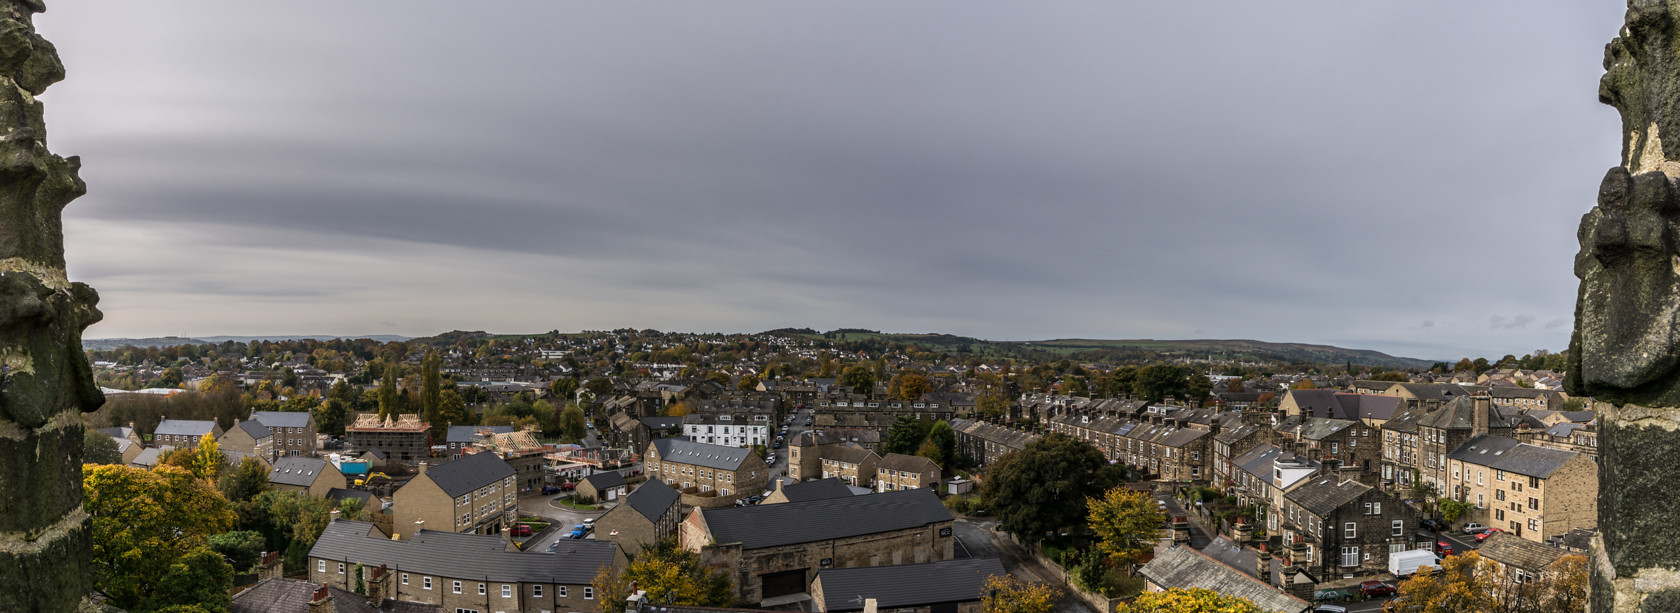 looking west from st oswalds bell tower (ref pa 33) 